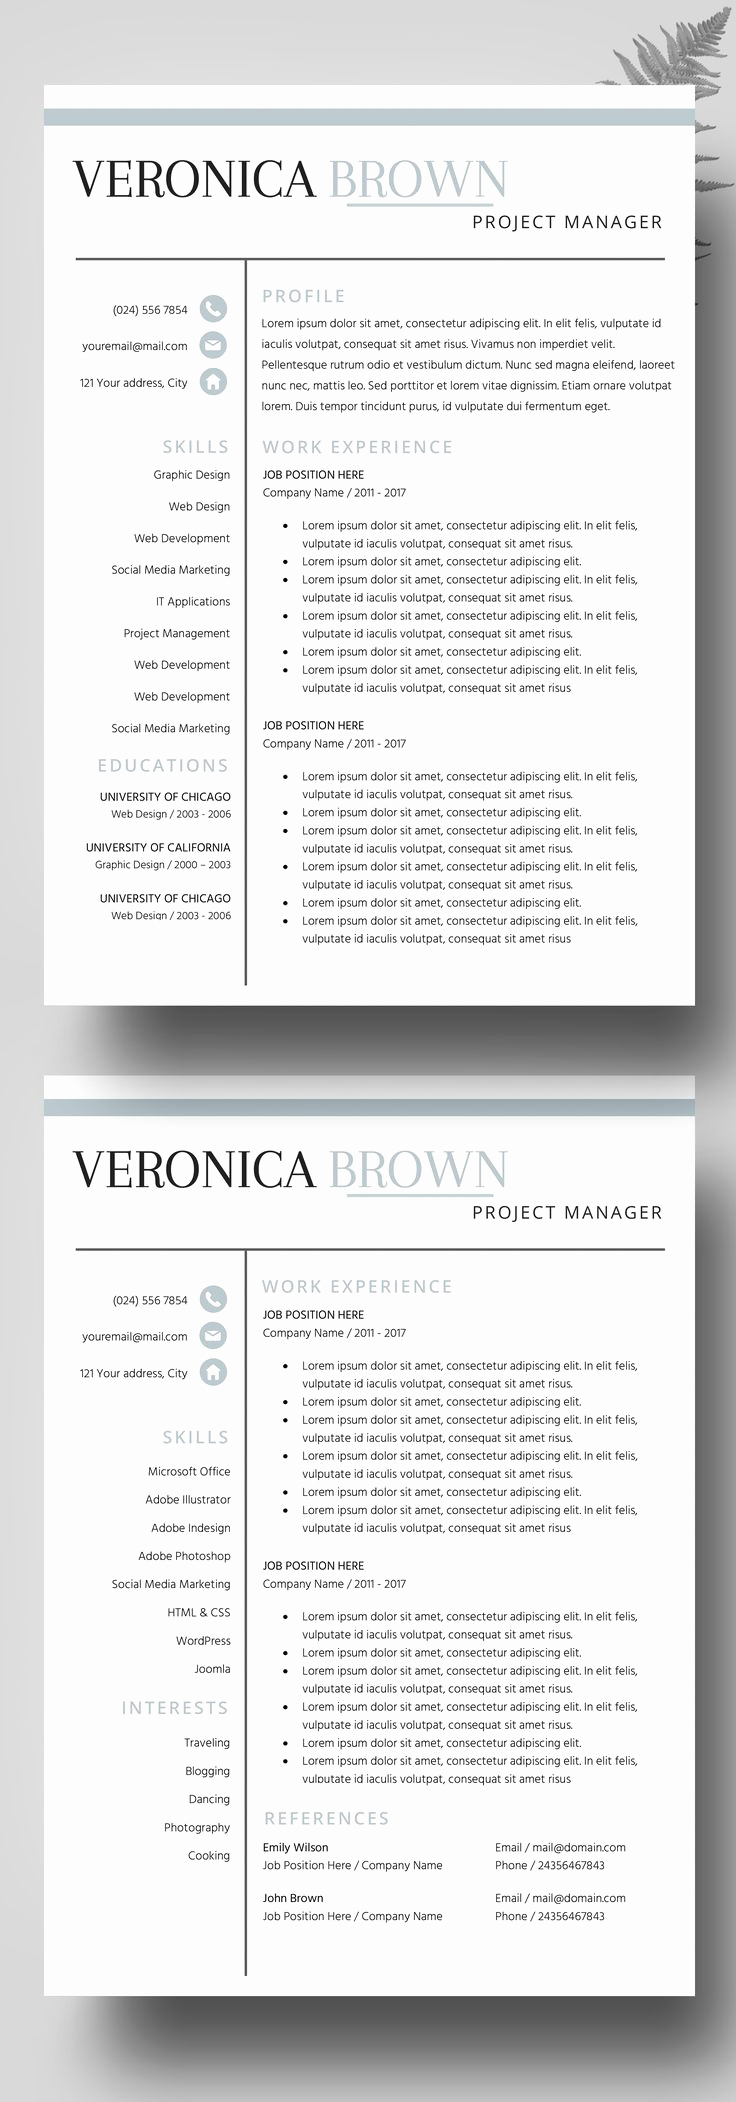 Professional Resume Template Word New Best 25 Professional Resume Design Ideas On Pinterest